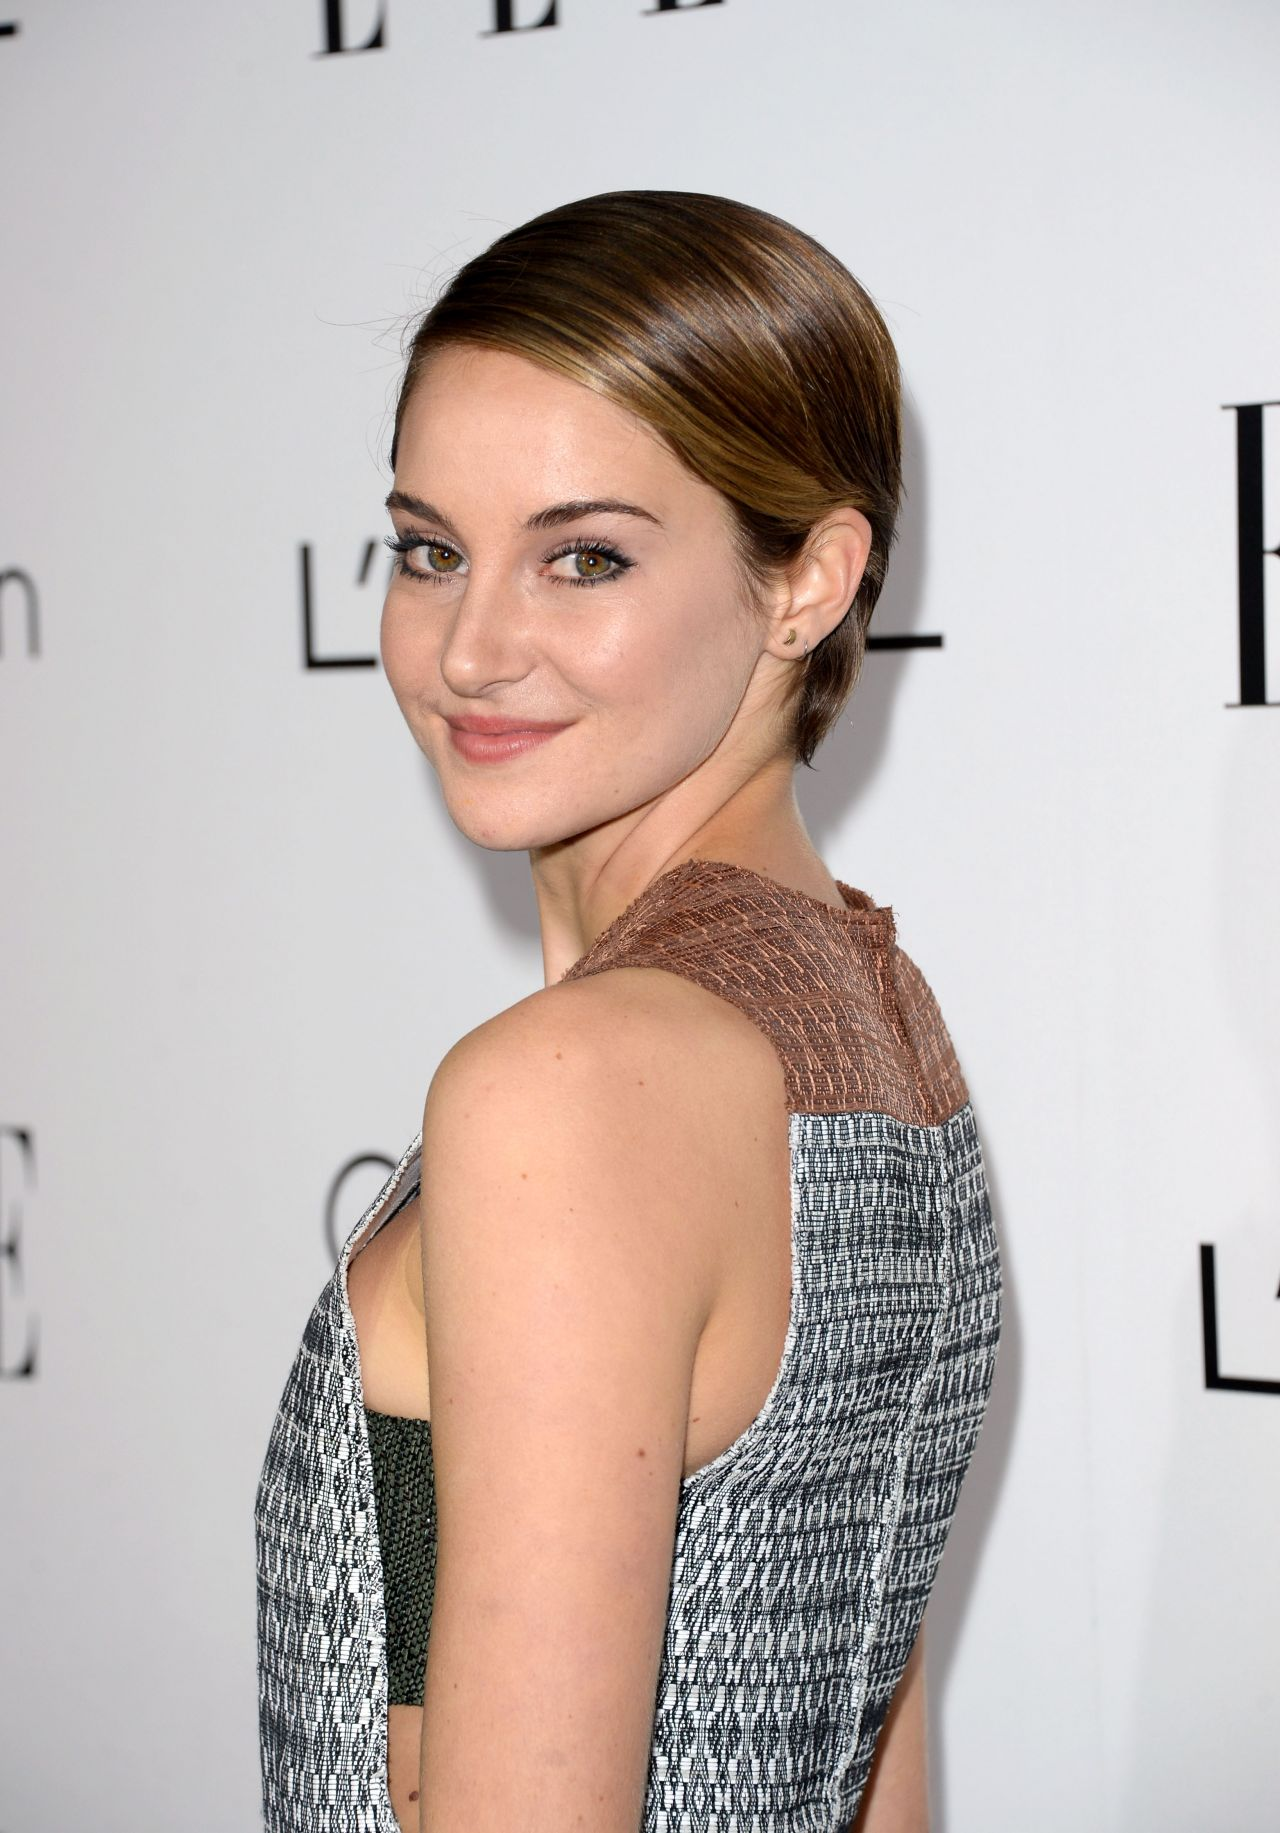 shailene woodley ростshailene woodley vk, shailene woodley instagram, shailene woodley 2016, shailene woodley gif, shailene woodley 2017, shailene woodley tumblr, shailene woodley and theo james, shailene woodley рост, shailene woodley movies, shailene woodley short hair, shailene woodley gallery, shailene woodley twitter, shailene woodley png, shailene woodley википедия, shailene woodley mary jane, shailene woodley фильмы, shailene woodley haircut, shailene woodley instagram official, shailene woodley gif tumblr, shailene woodley wdw